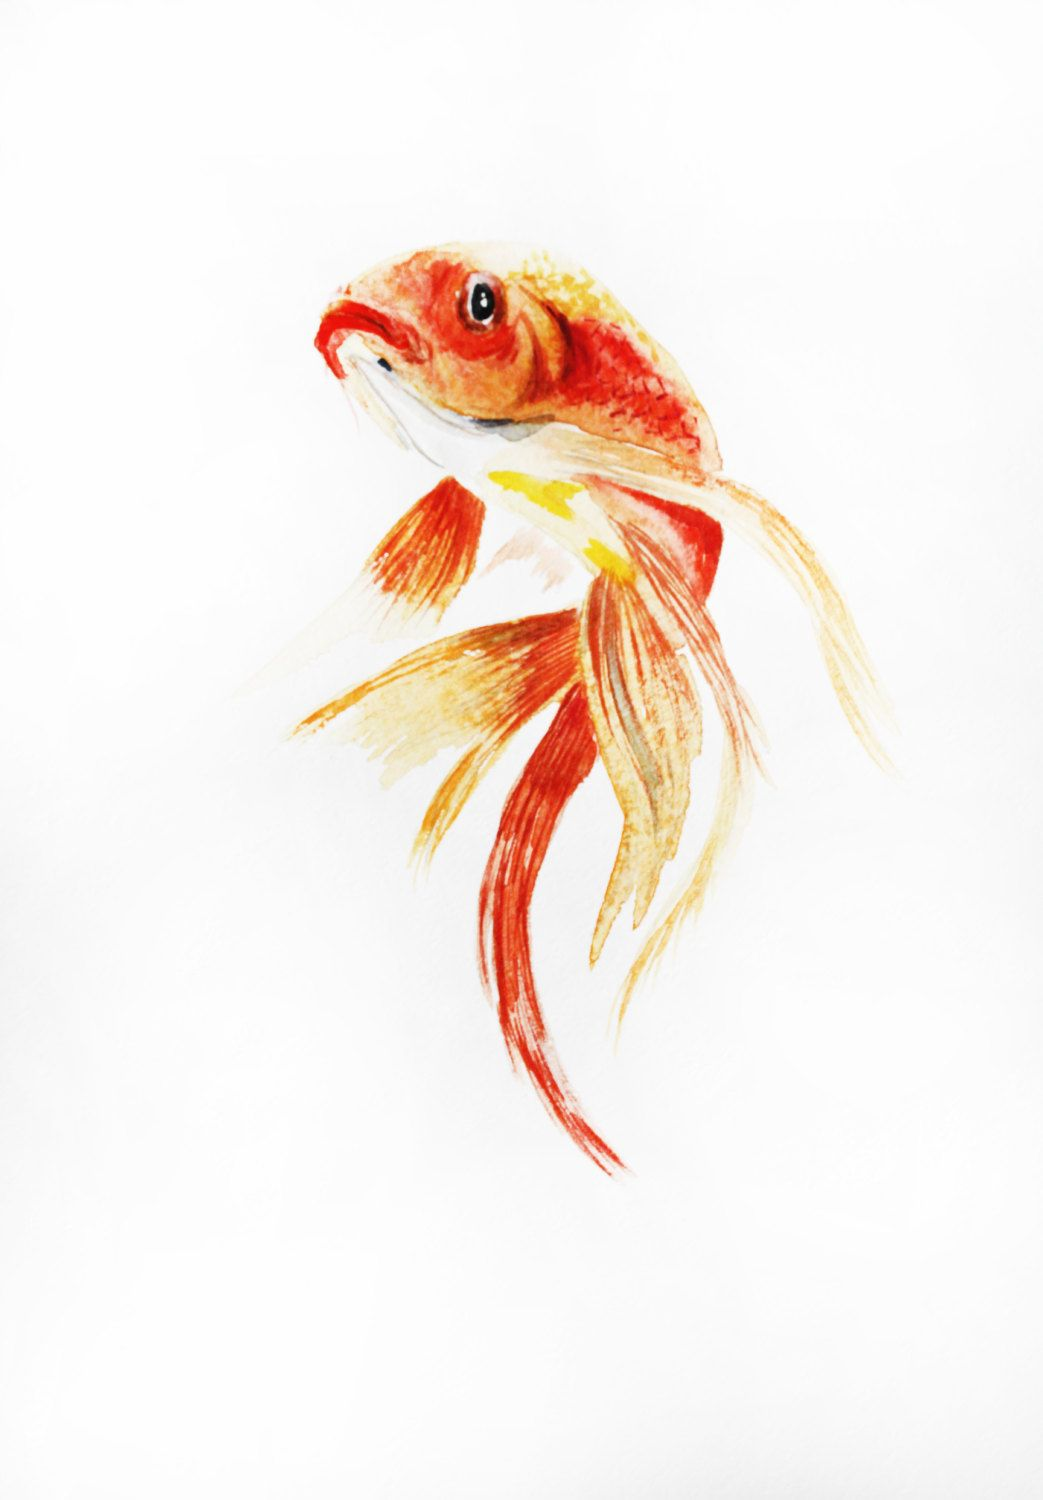 1043x1500 Gold Fish Watercolor Original, Original Art, Gold Fish Watercolor